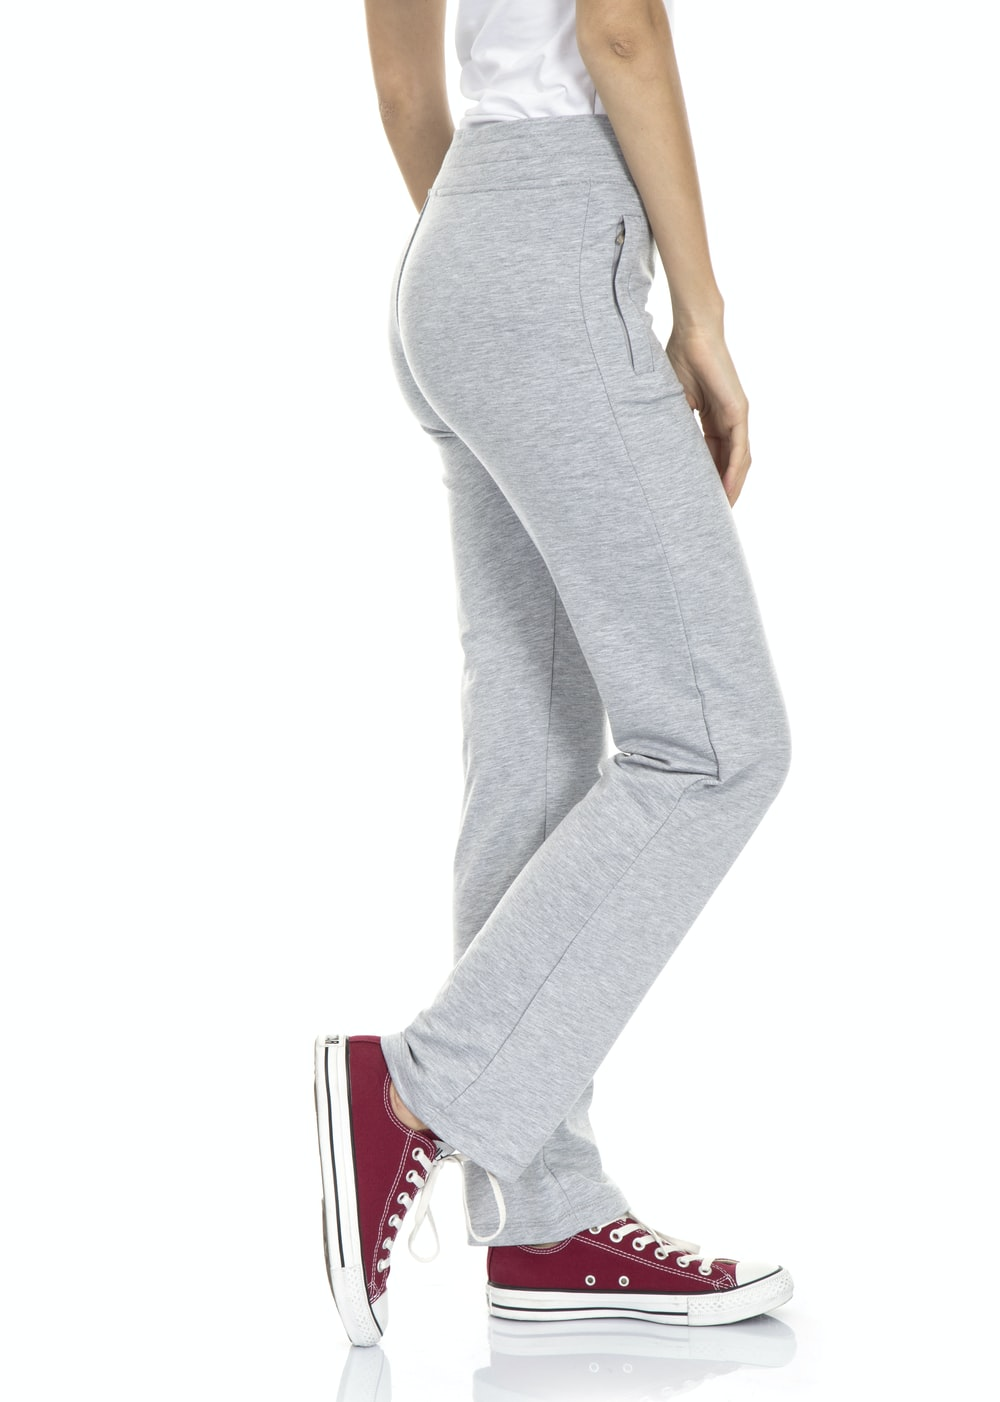 woman in gray tank top and gray pants